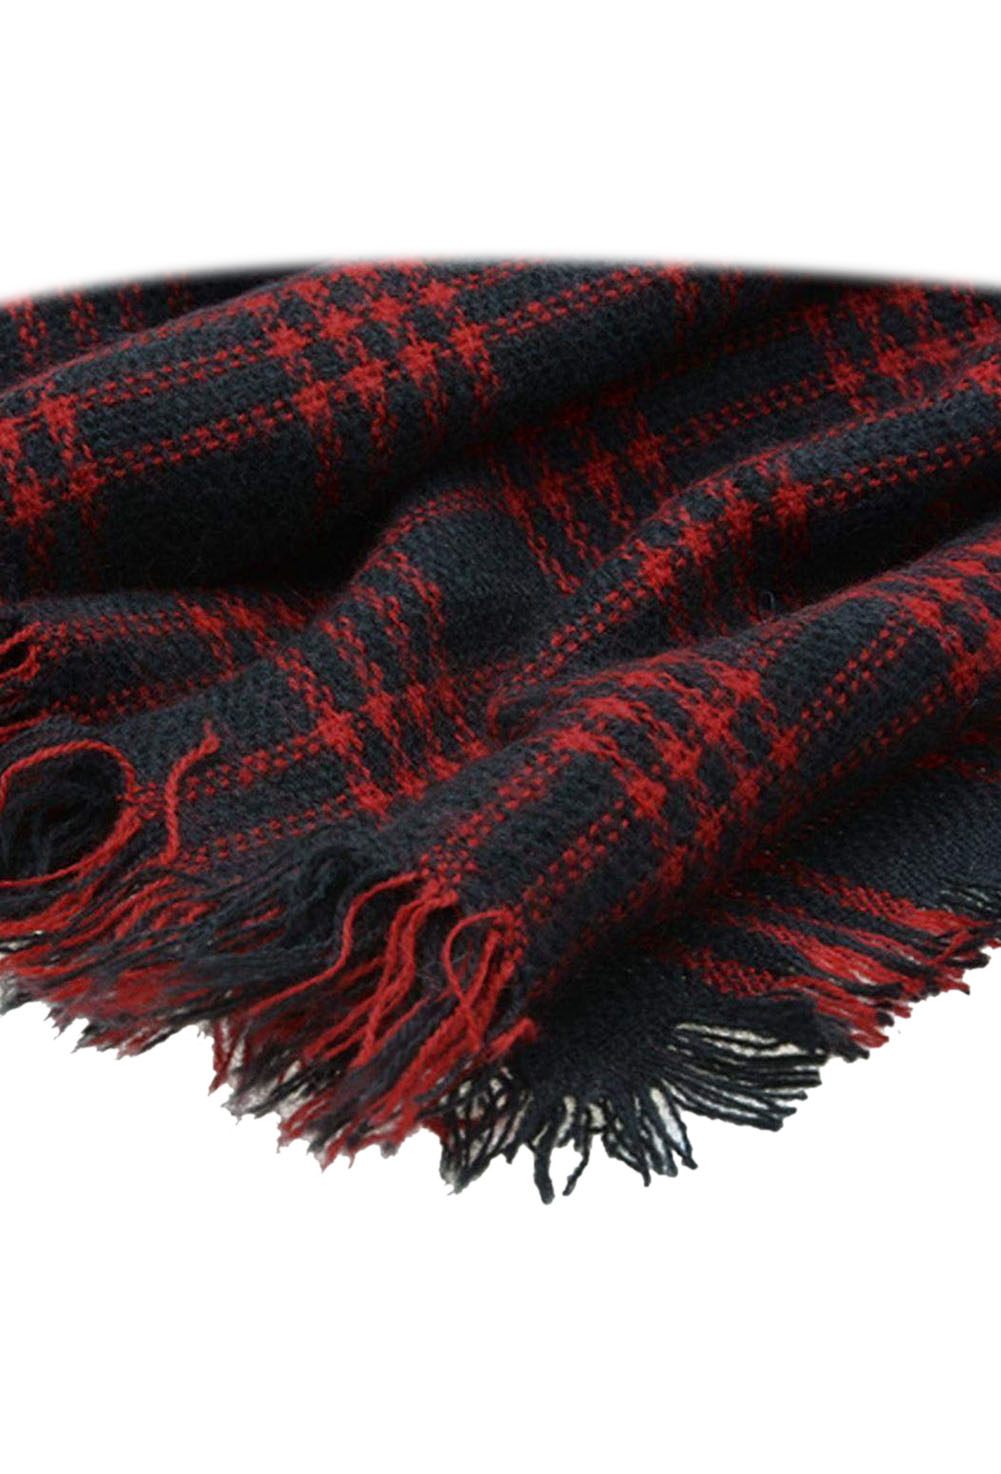 Hot Wool Blend Tartan Plaid Soft   Scarf     Wrap   Shawl Blanket Stole Pashmina Red+Black